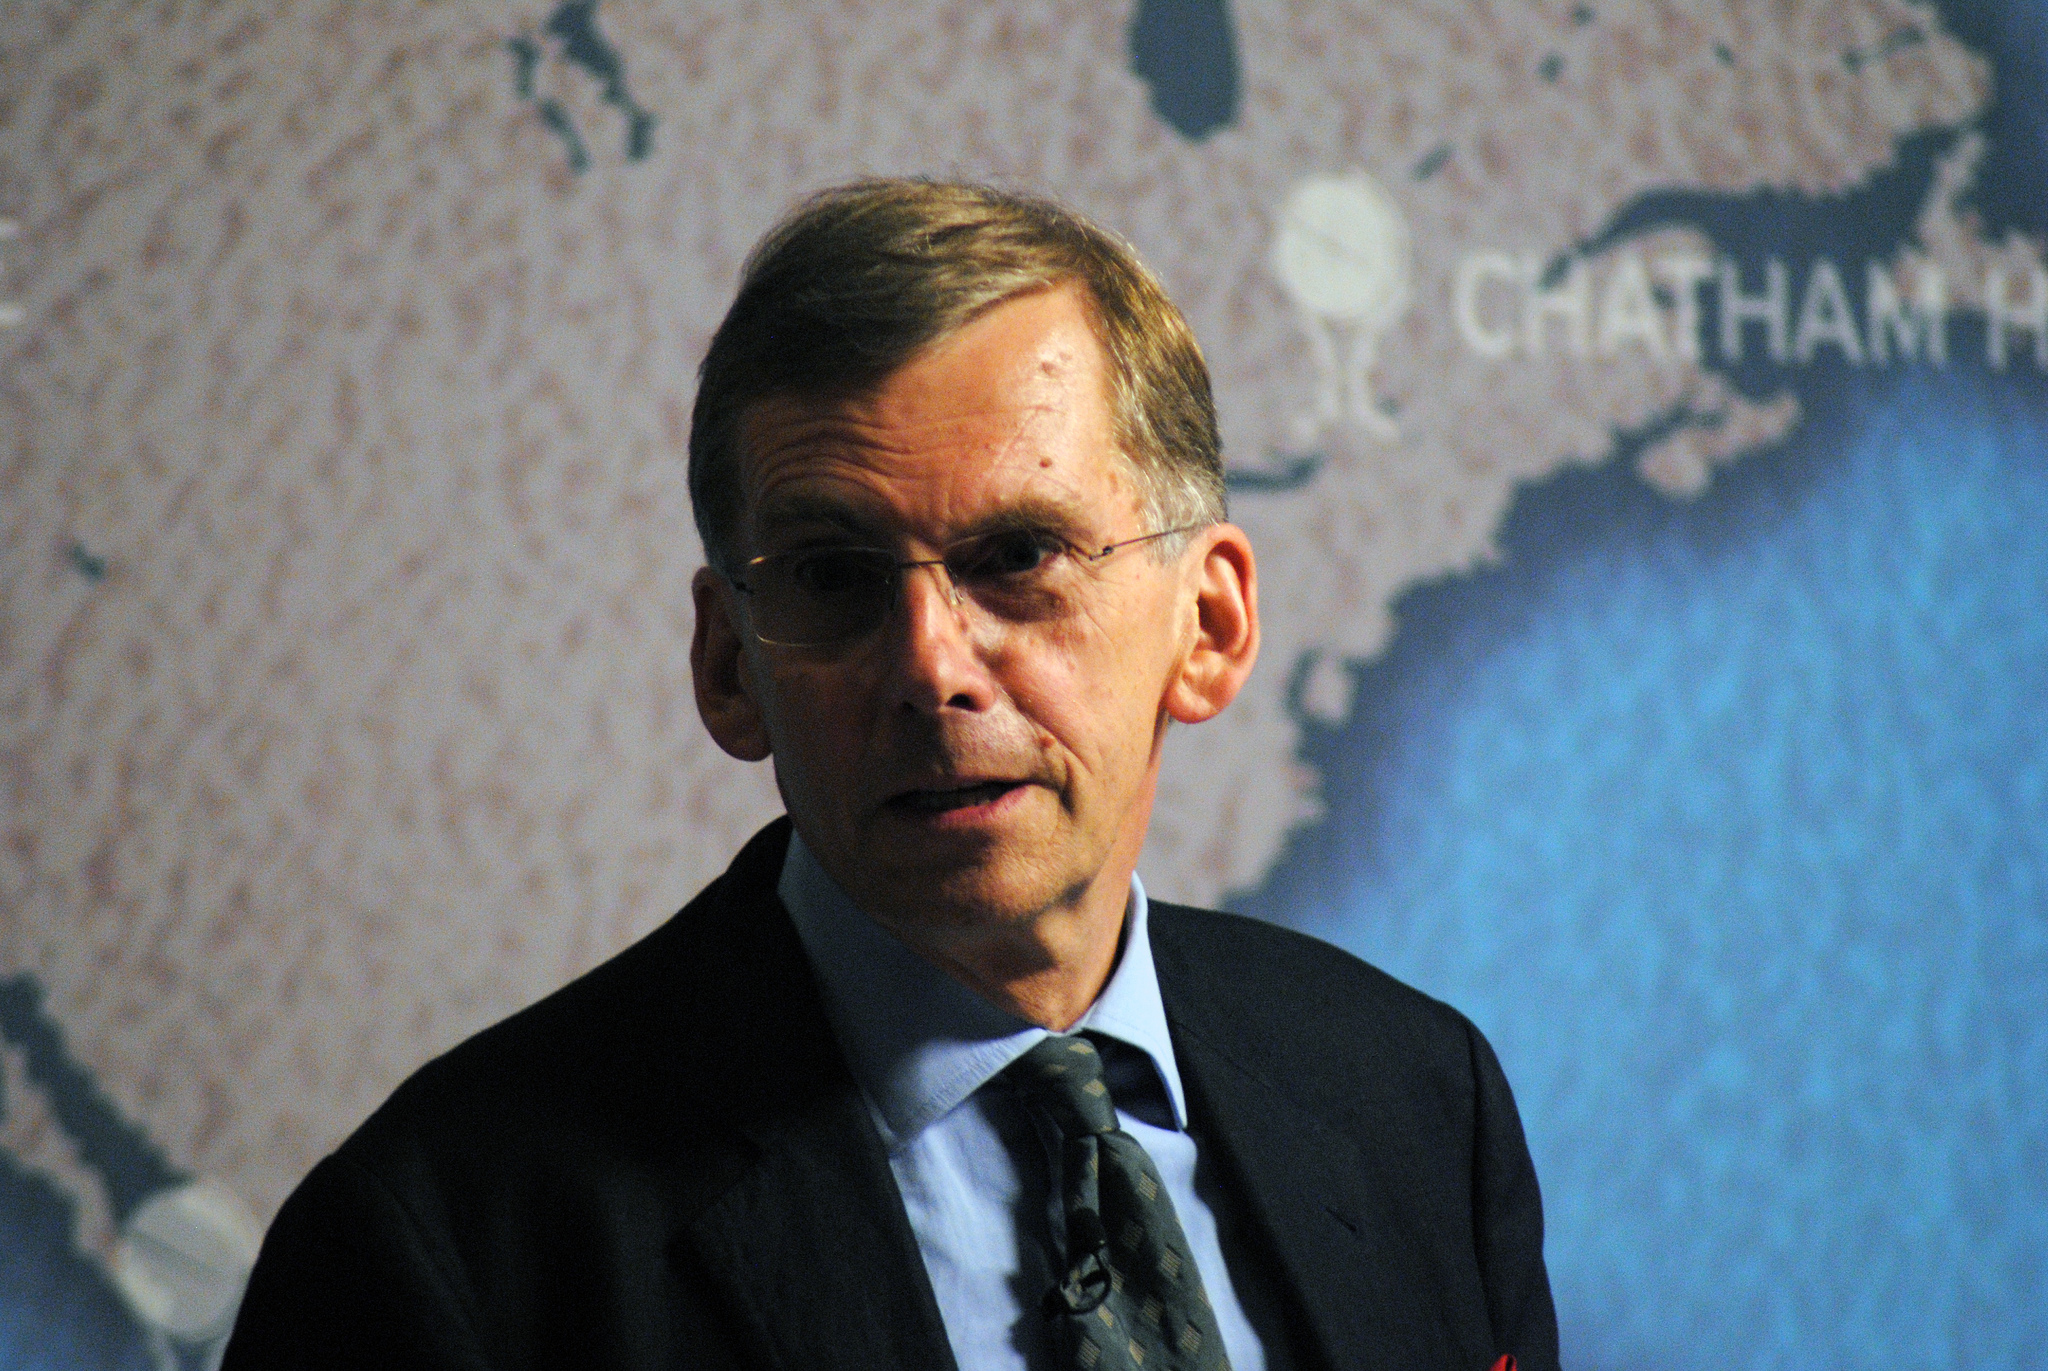 Professor Sir David Omand GCB, talking at Chatham House in September 2013. Photo: Chatham House (CC)